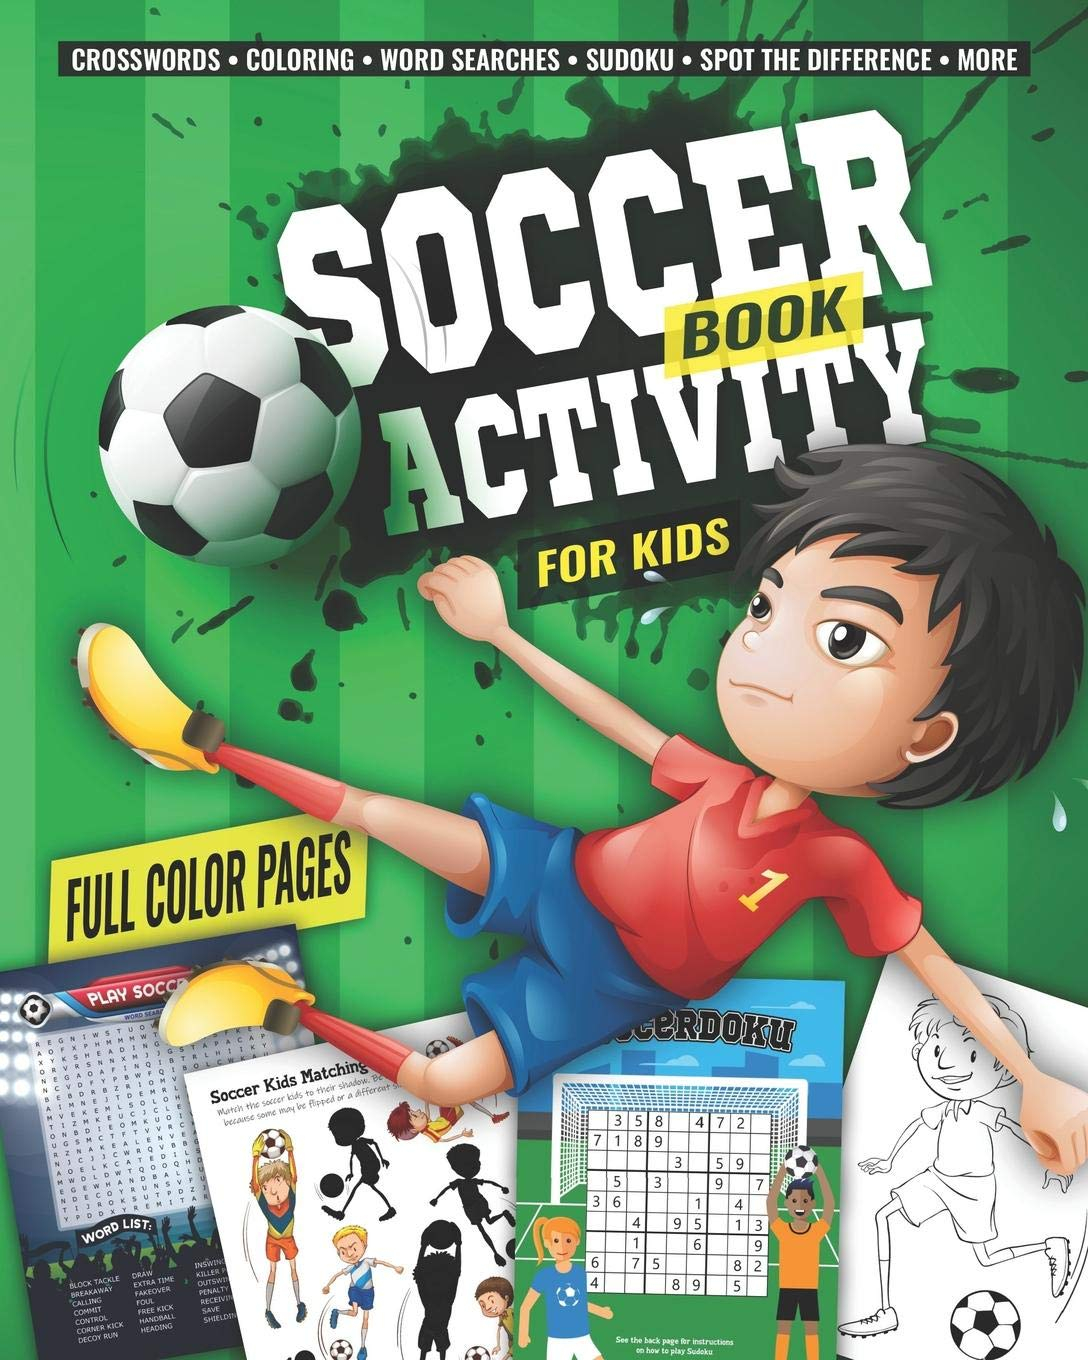 Soccer Activity Book for Kids: Fun Sports Activities Coloring Sudoku Sudokode More Secret Code Sudoku Word Search Mazes Crossword Puzzles